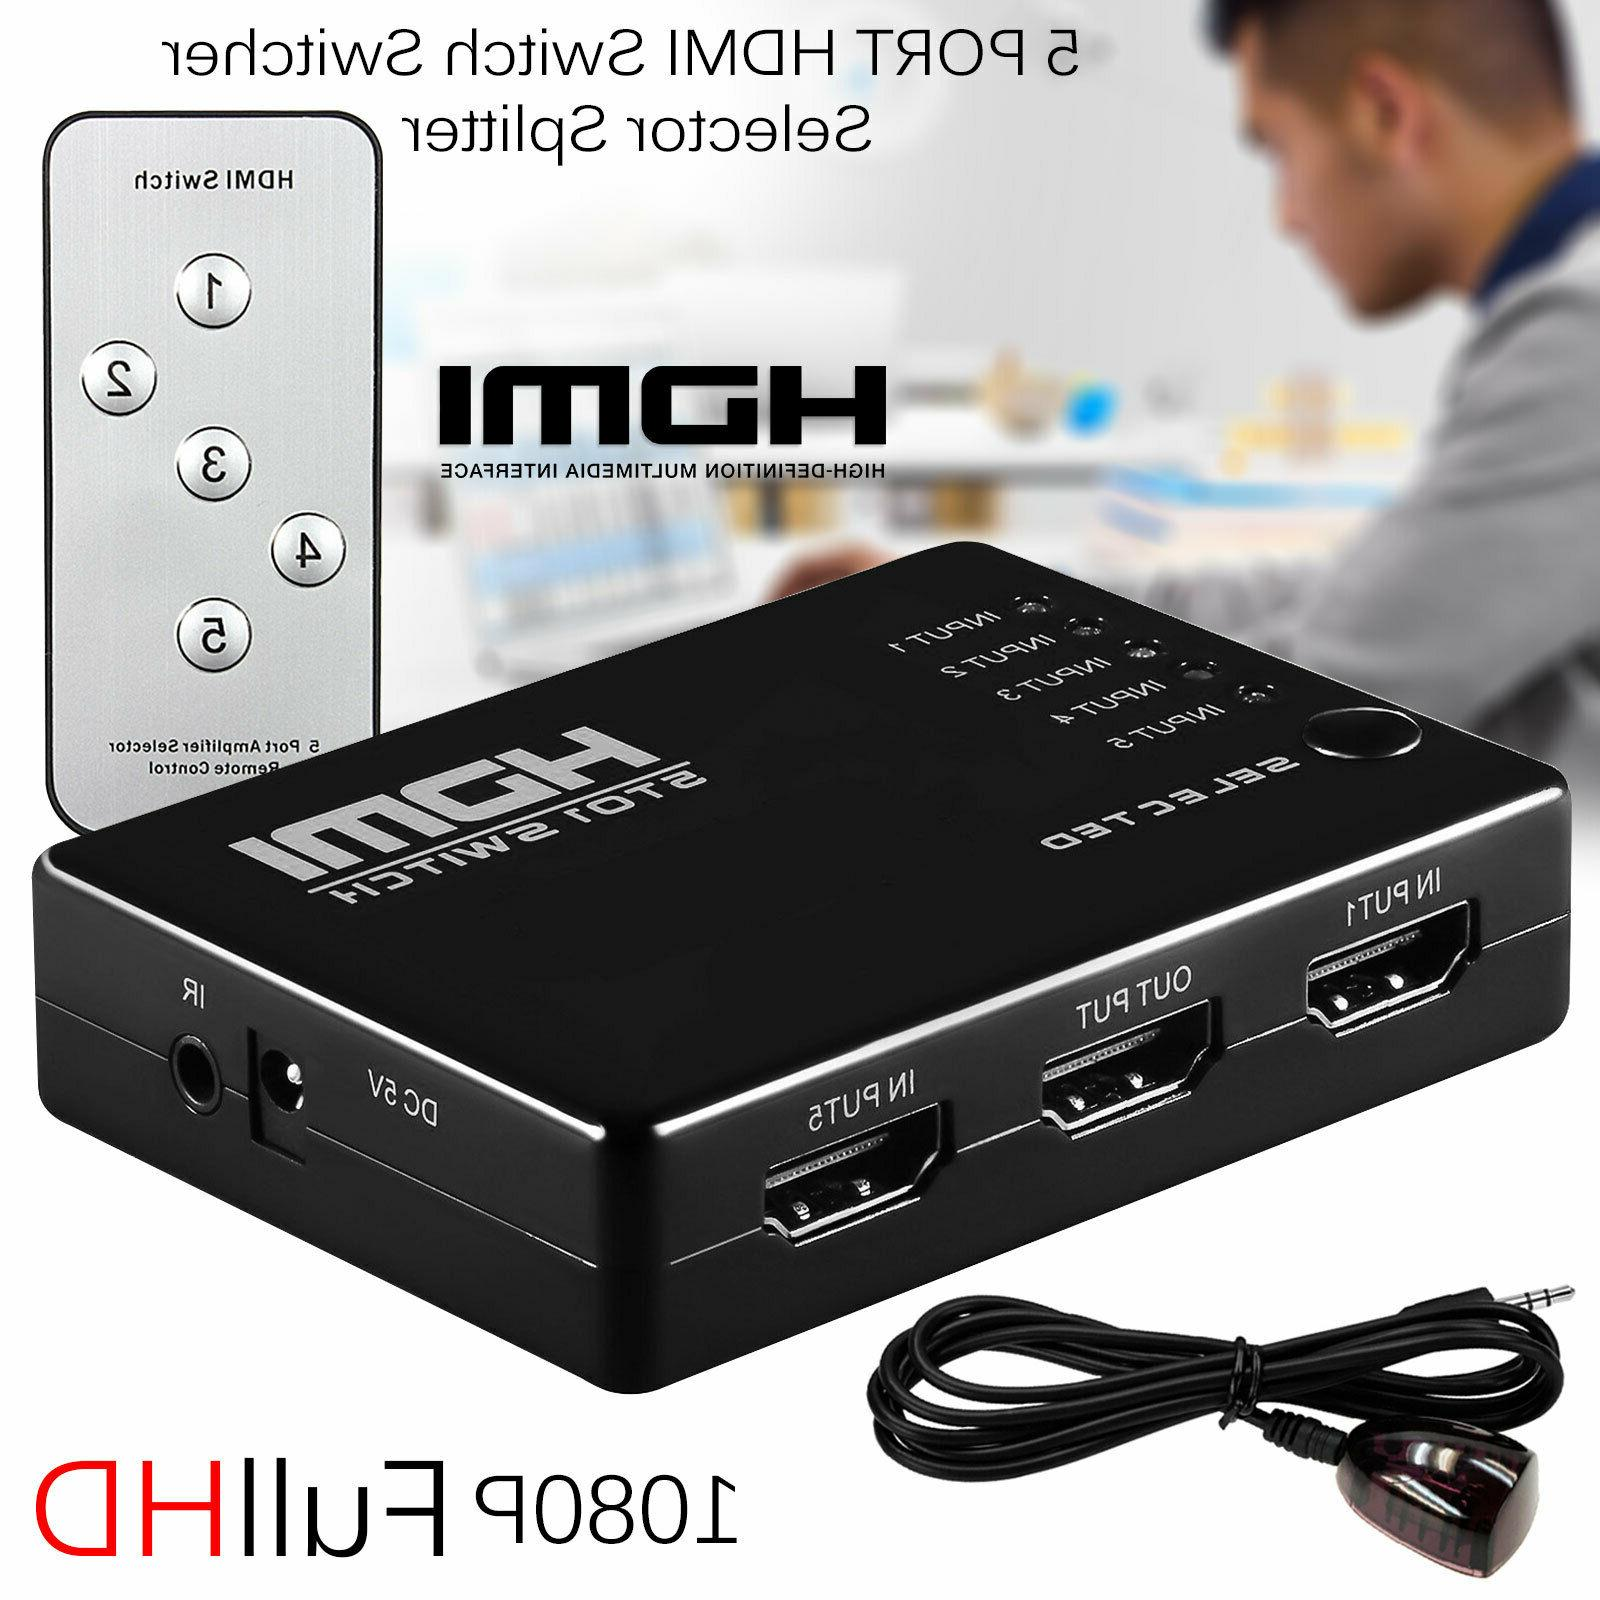 3d 1080p 5 port hdmi switch switcher